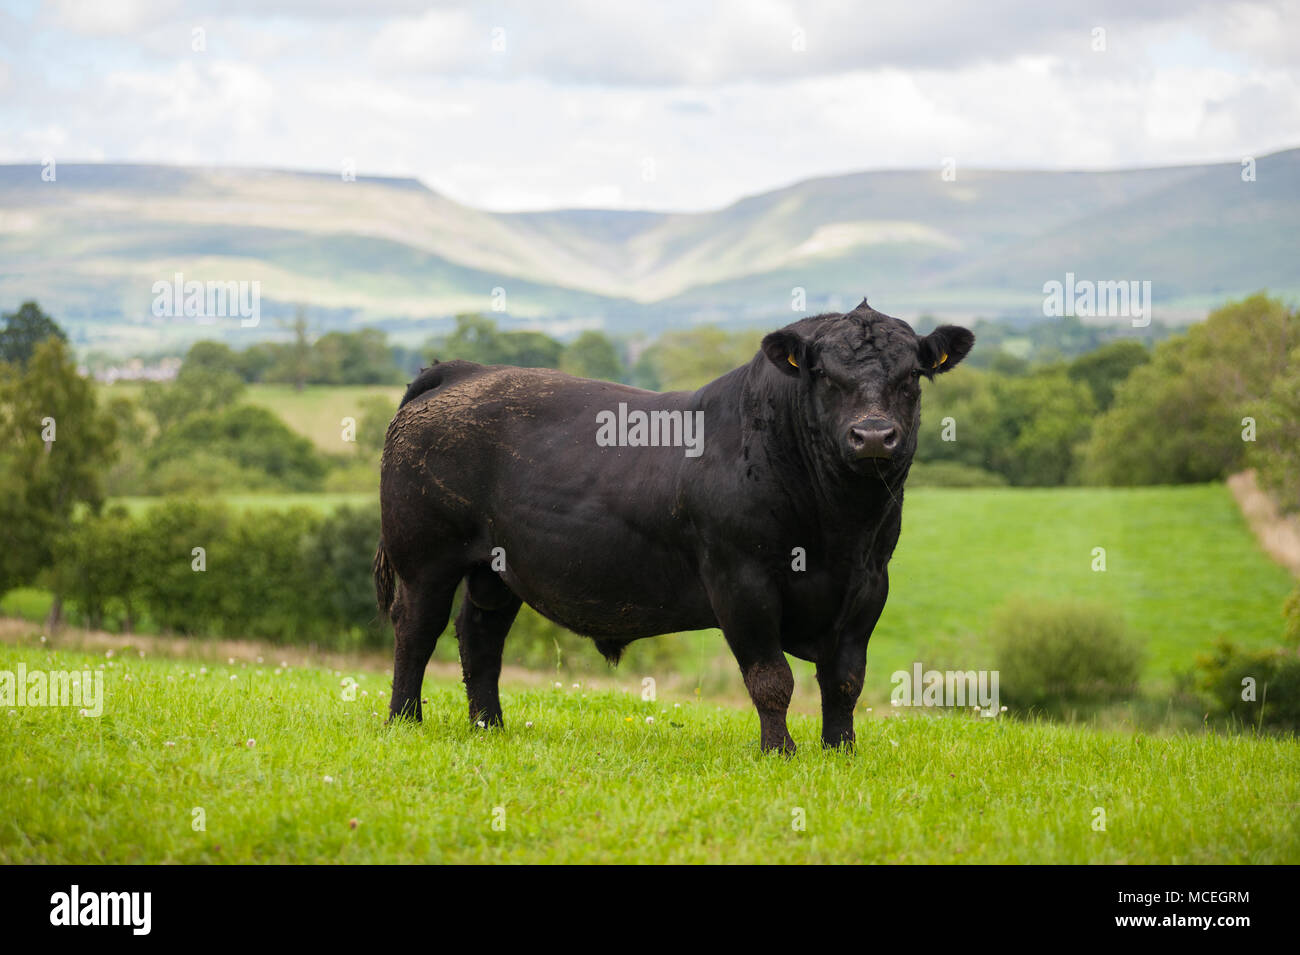 Pedigree Black Aberdeen Angus bull  grazing in Cumbria with the Pennines and High Cup Nick in the background. - Stock Image